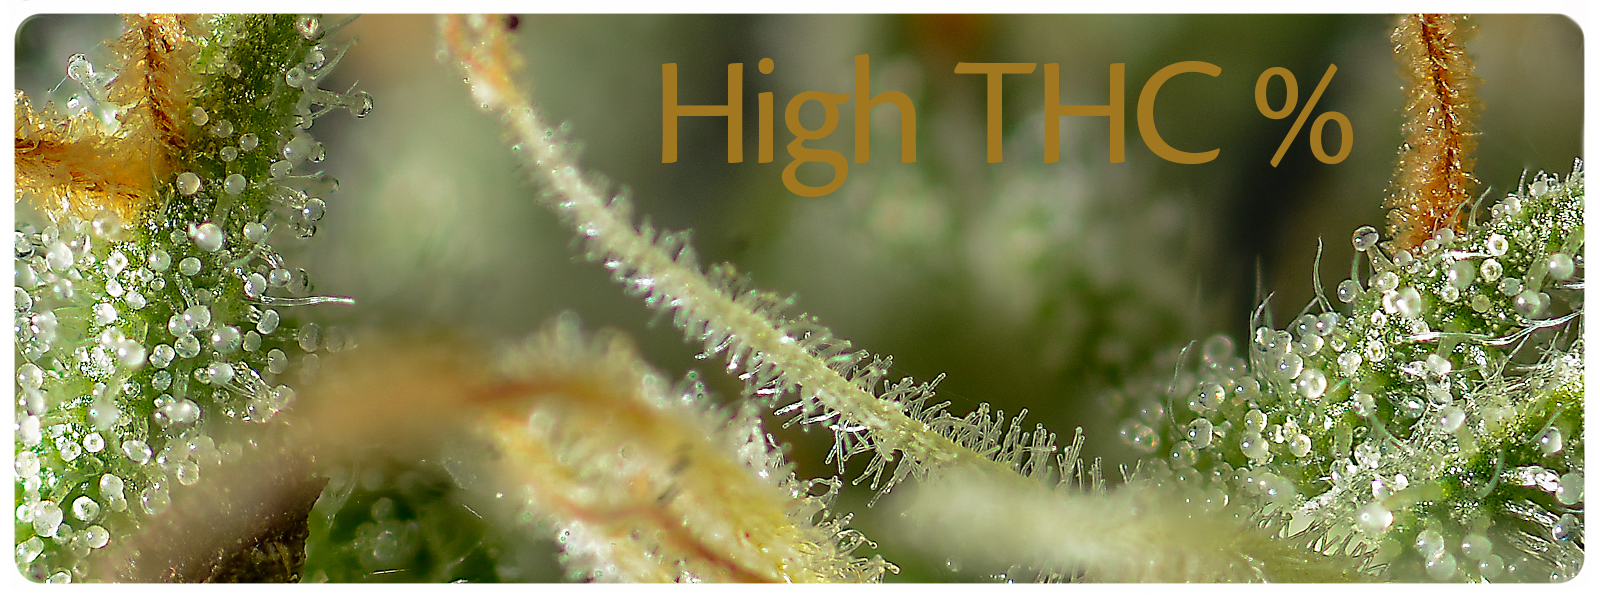 High THC strains in sanniesshop are some of the strongest on the cannabis market